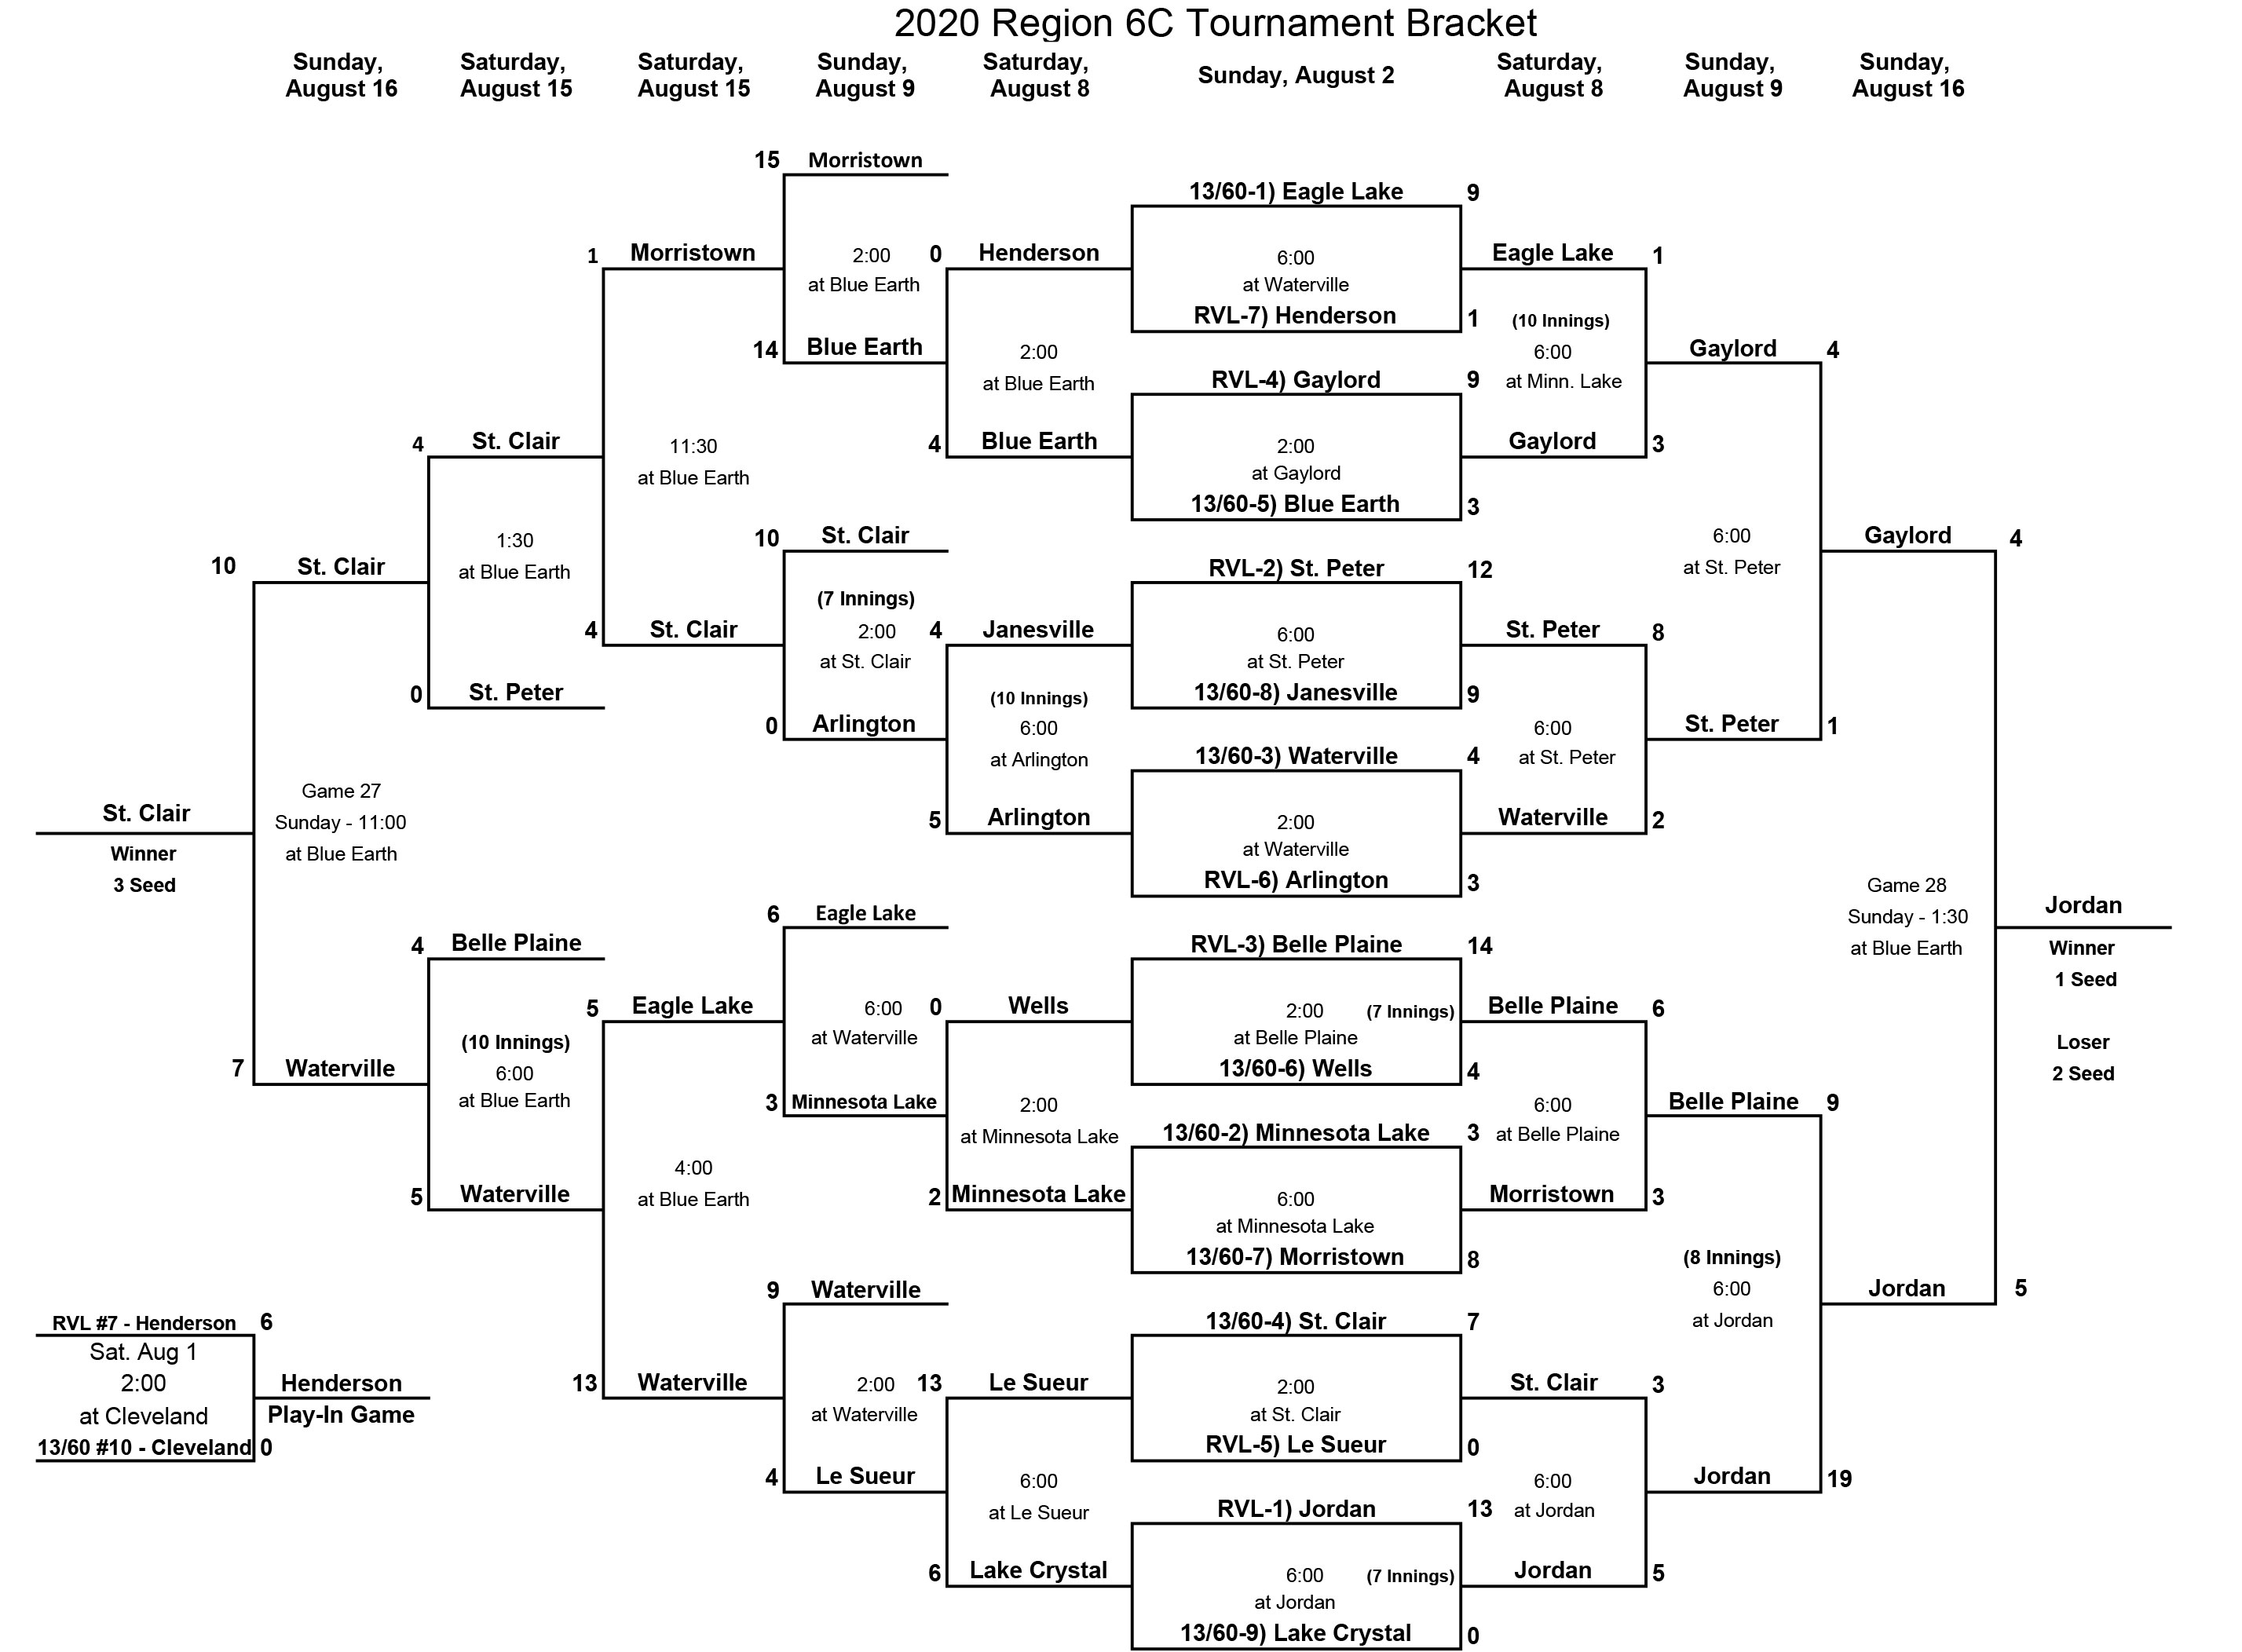 2020_Region6Cbracket.jpg